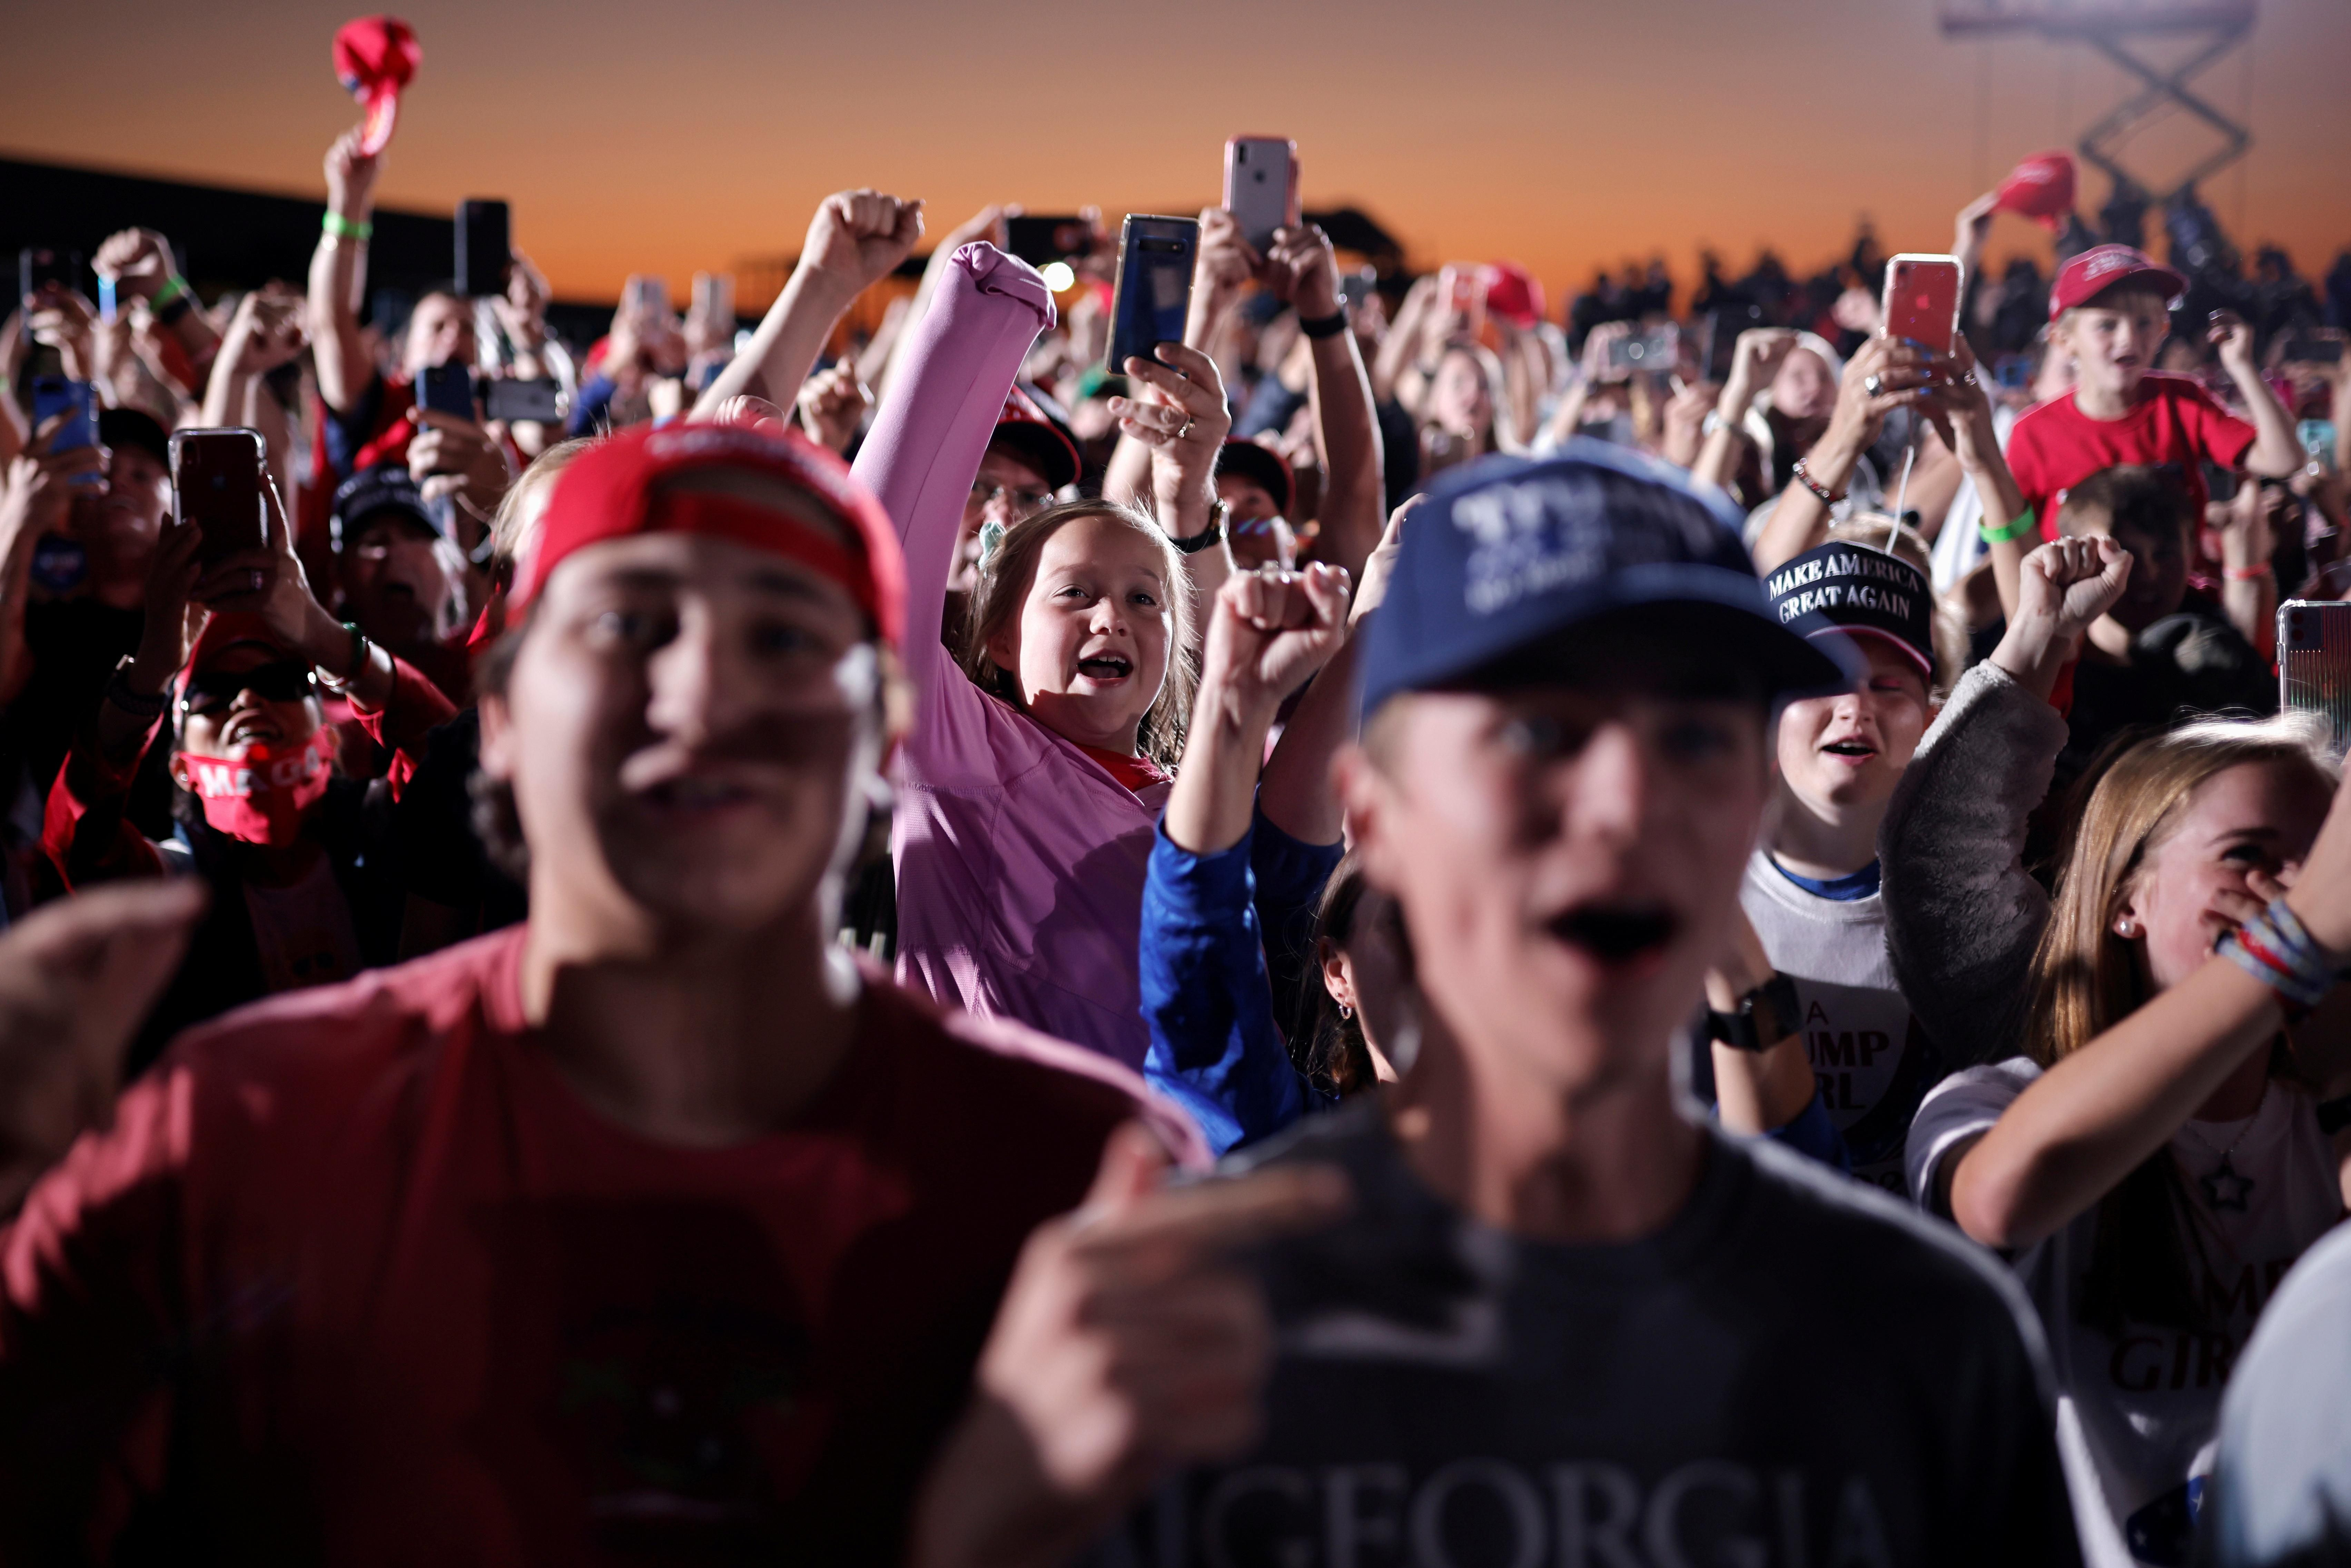 Trump supporters attend an election campaign rally in Georgia. Reuters